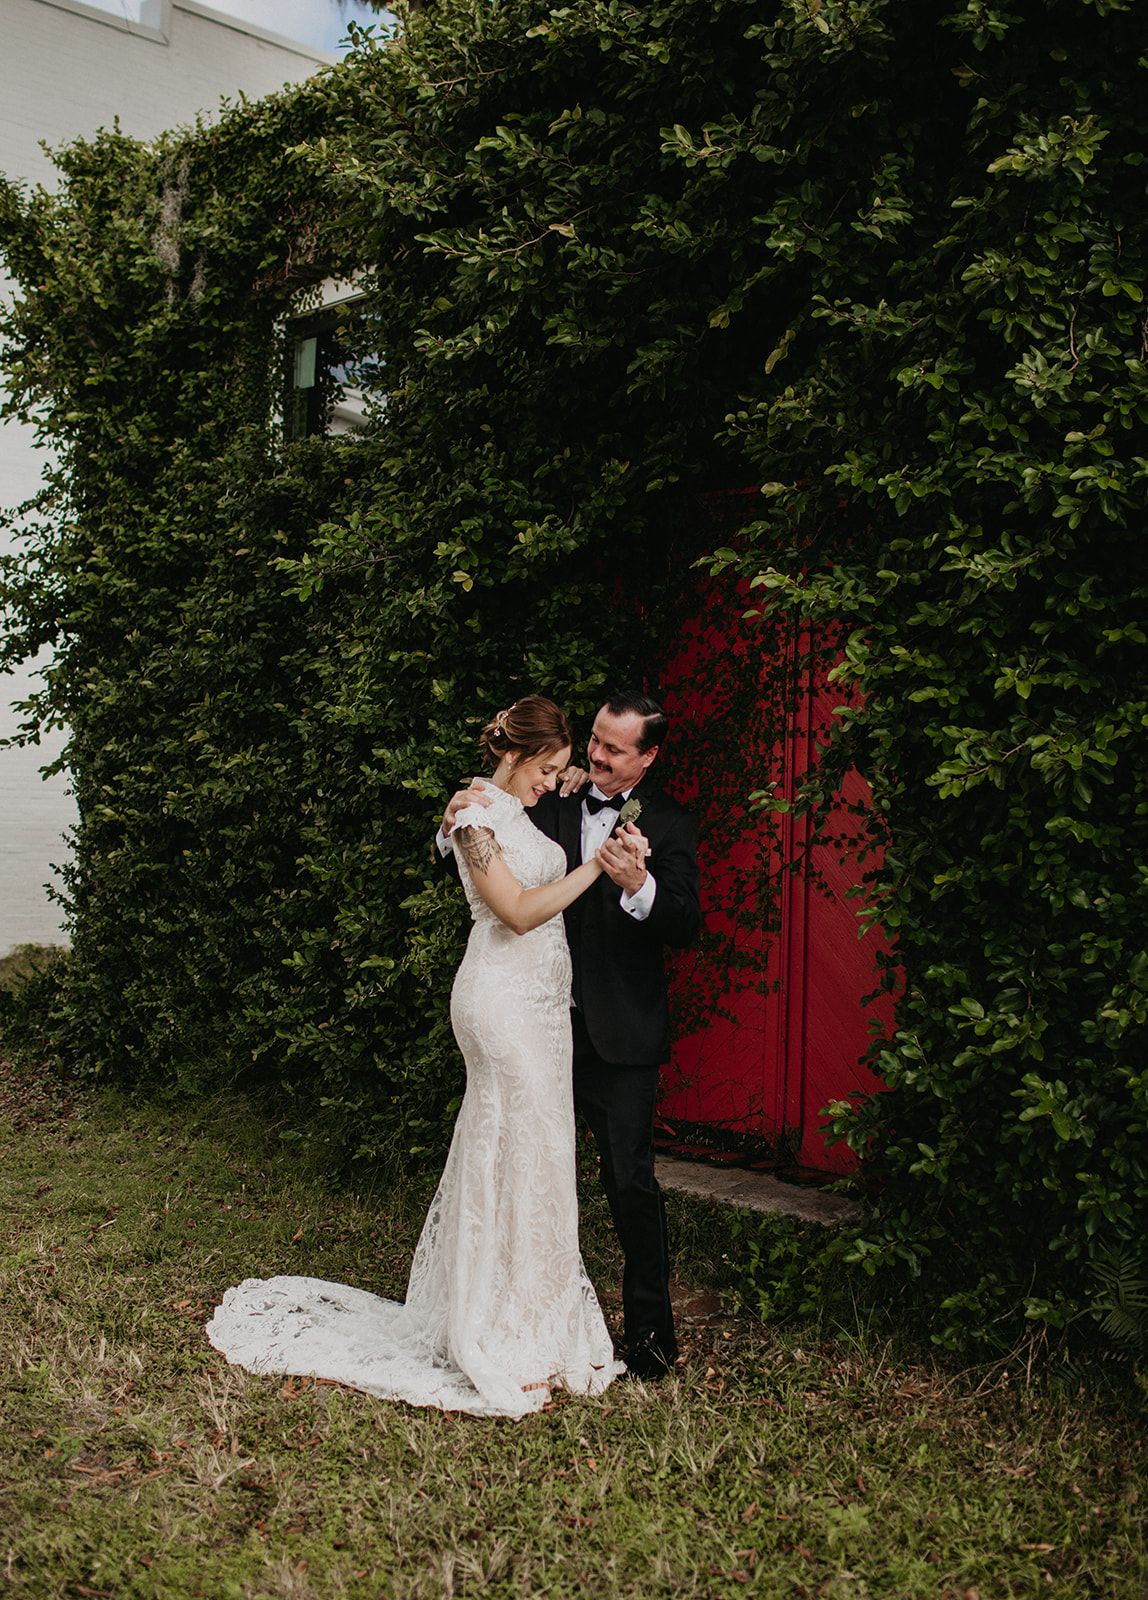 All of our couples seem to find the secret red door of ...